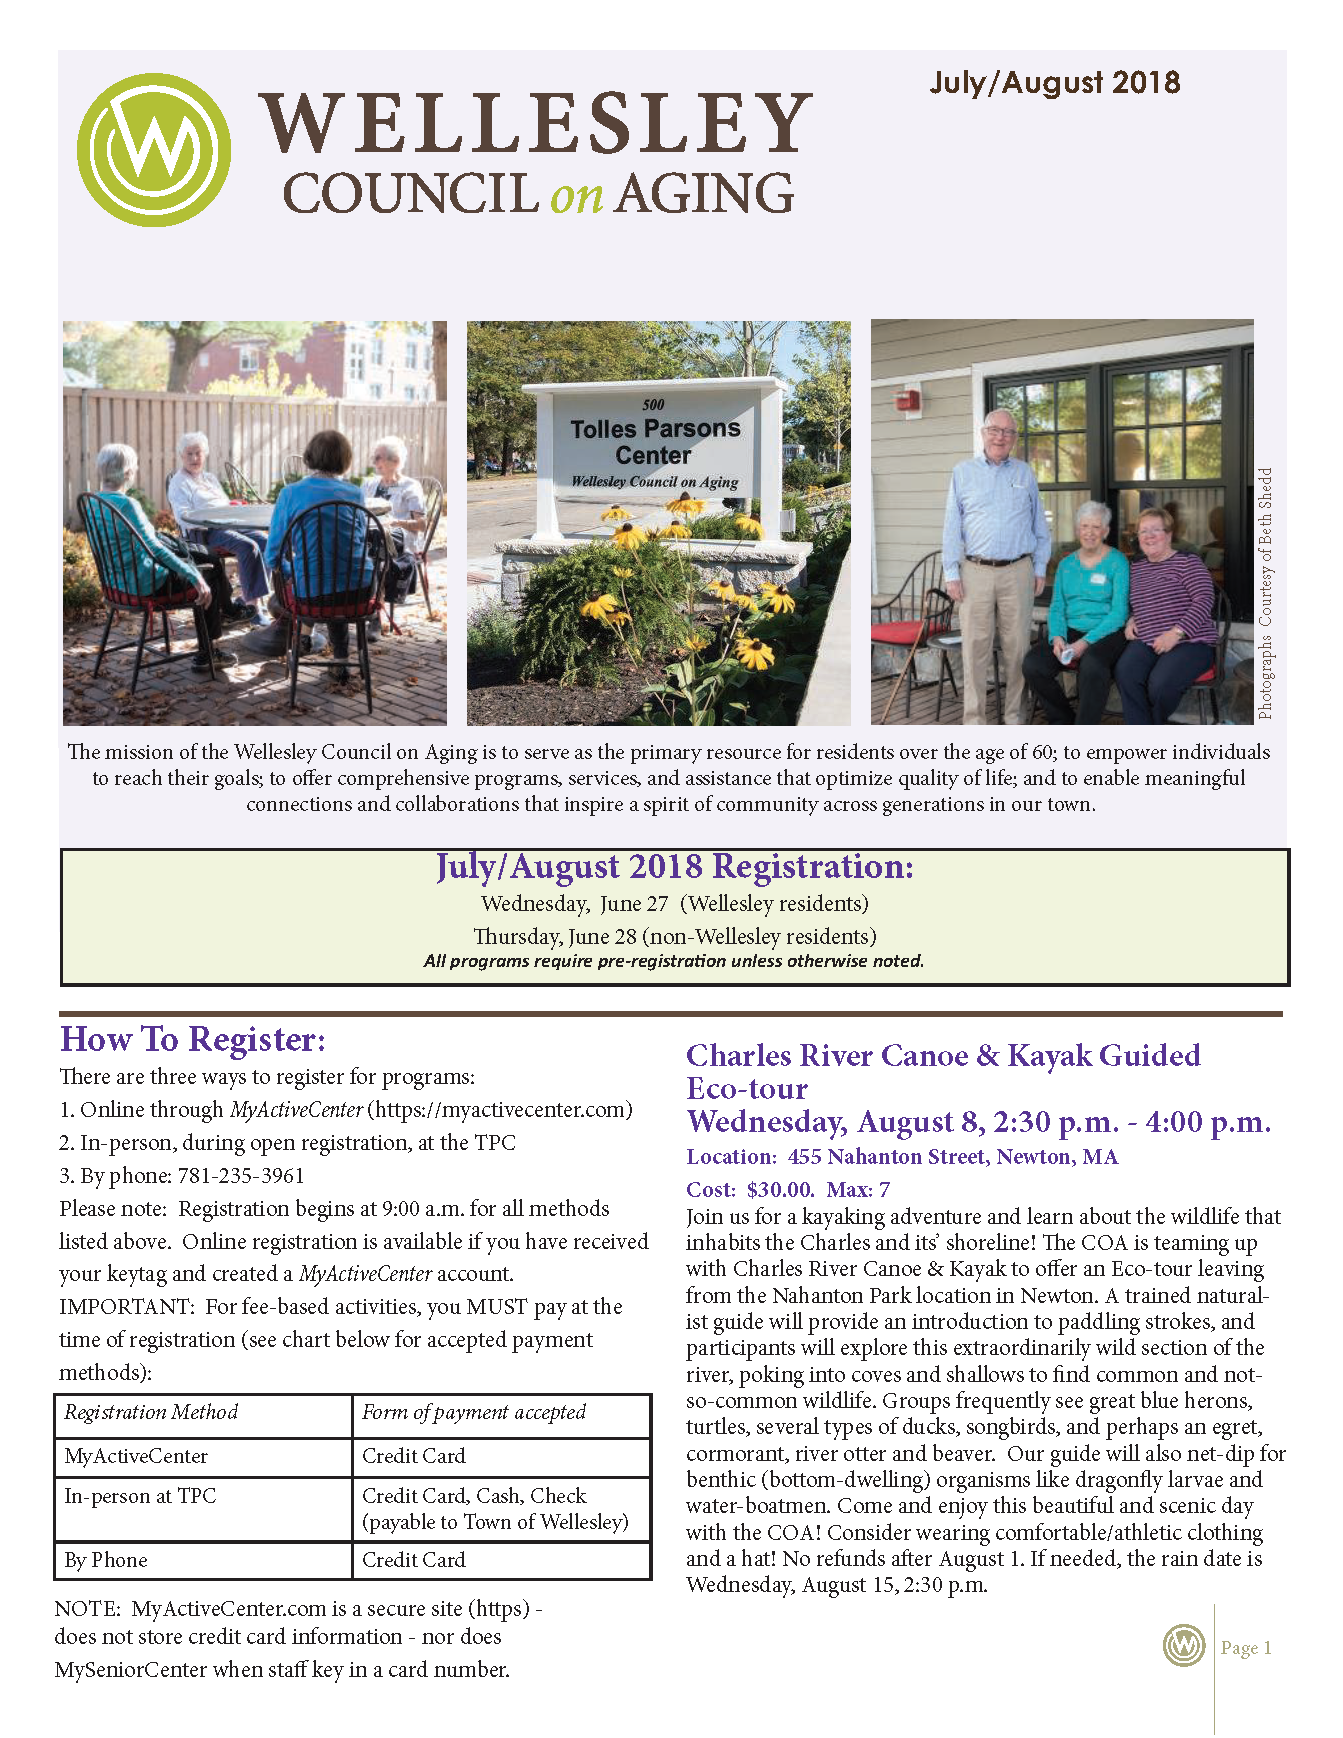 July August 2018 Newsletter Cover